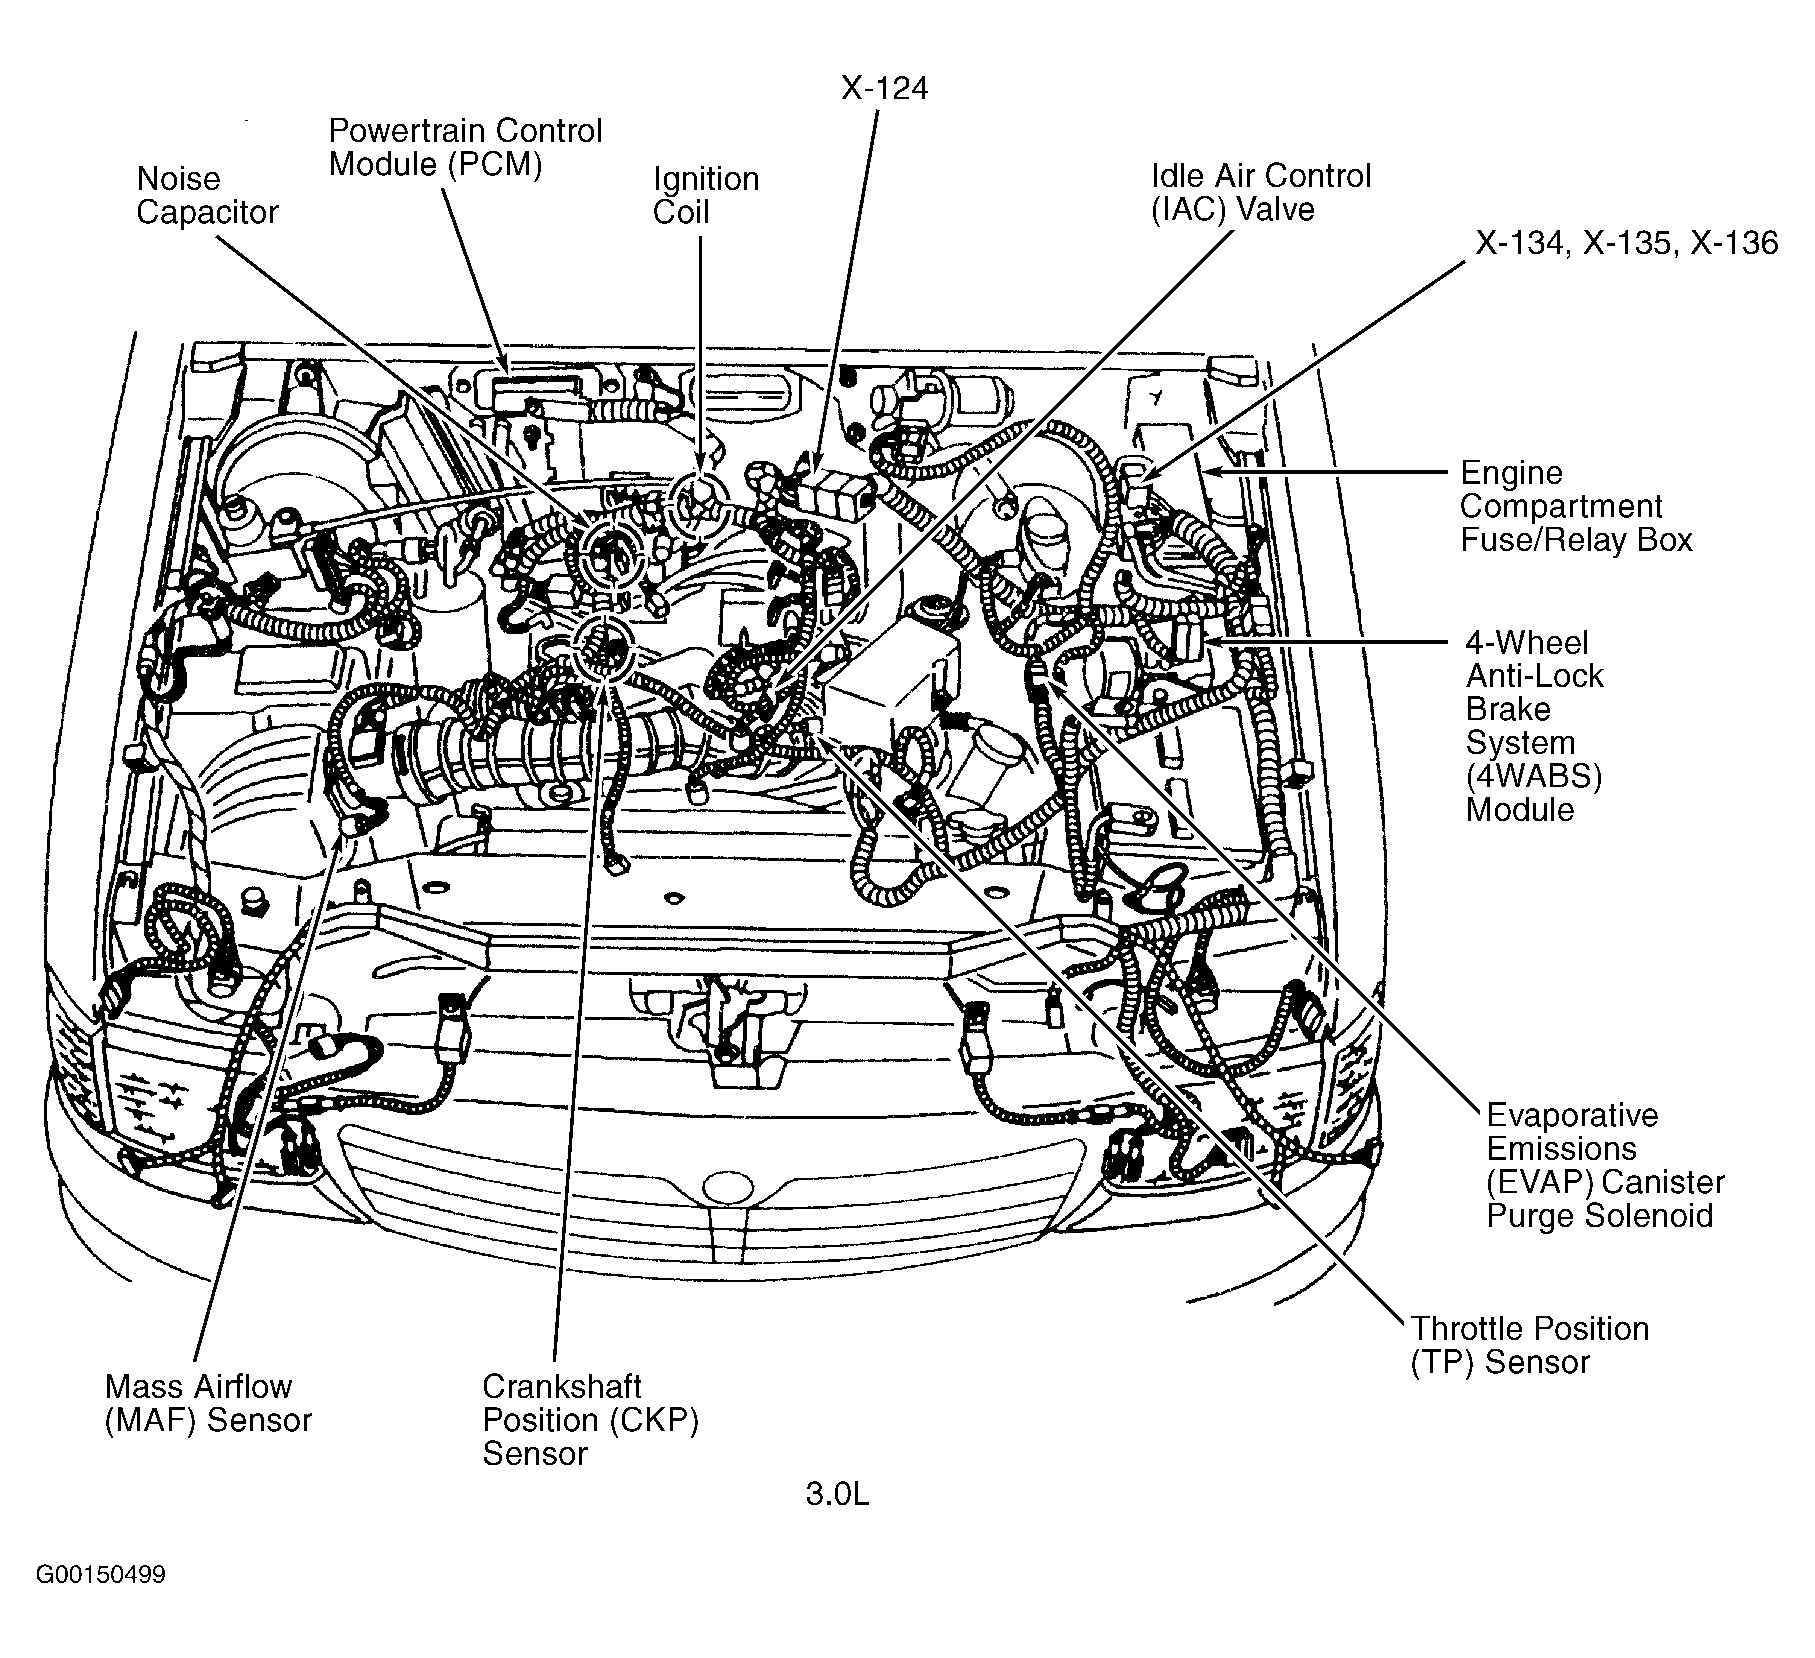 Audi B5 S4 Engine Bay Diagram - wiring diagram cycle-title -  cycle-title.pennyapp.it | 2008 Audi A4 Engine Compartment Wiring Diagram |  | PennyApp